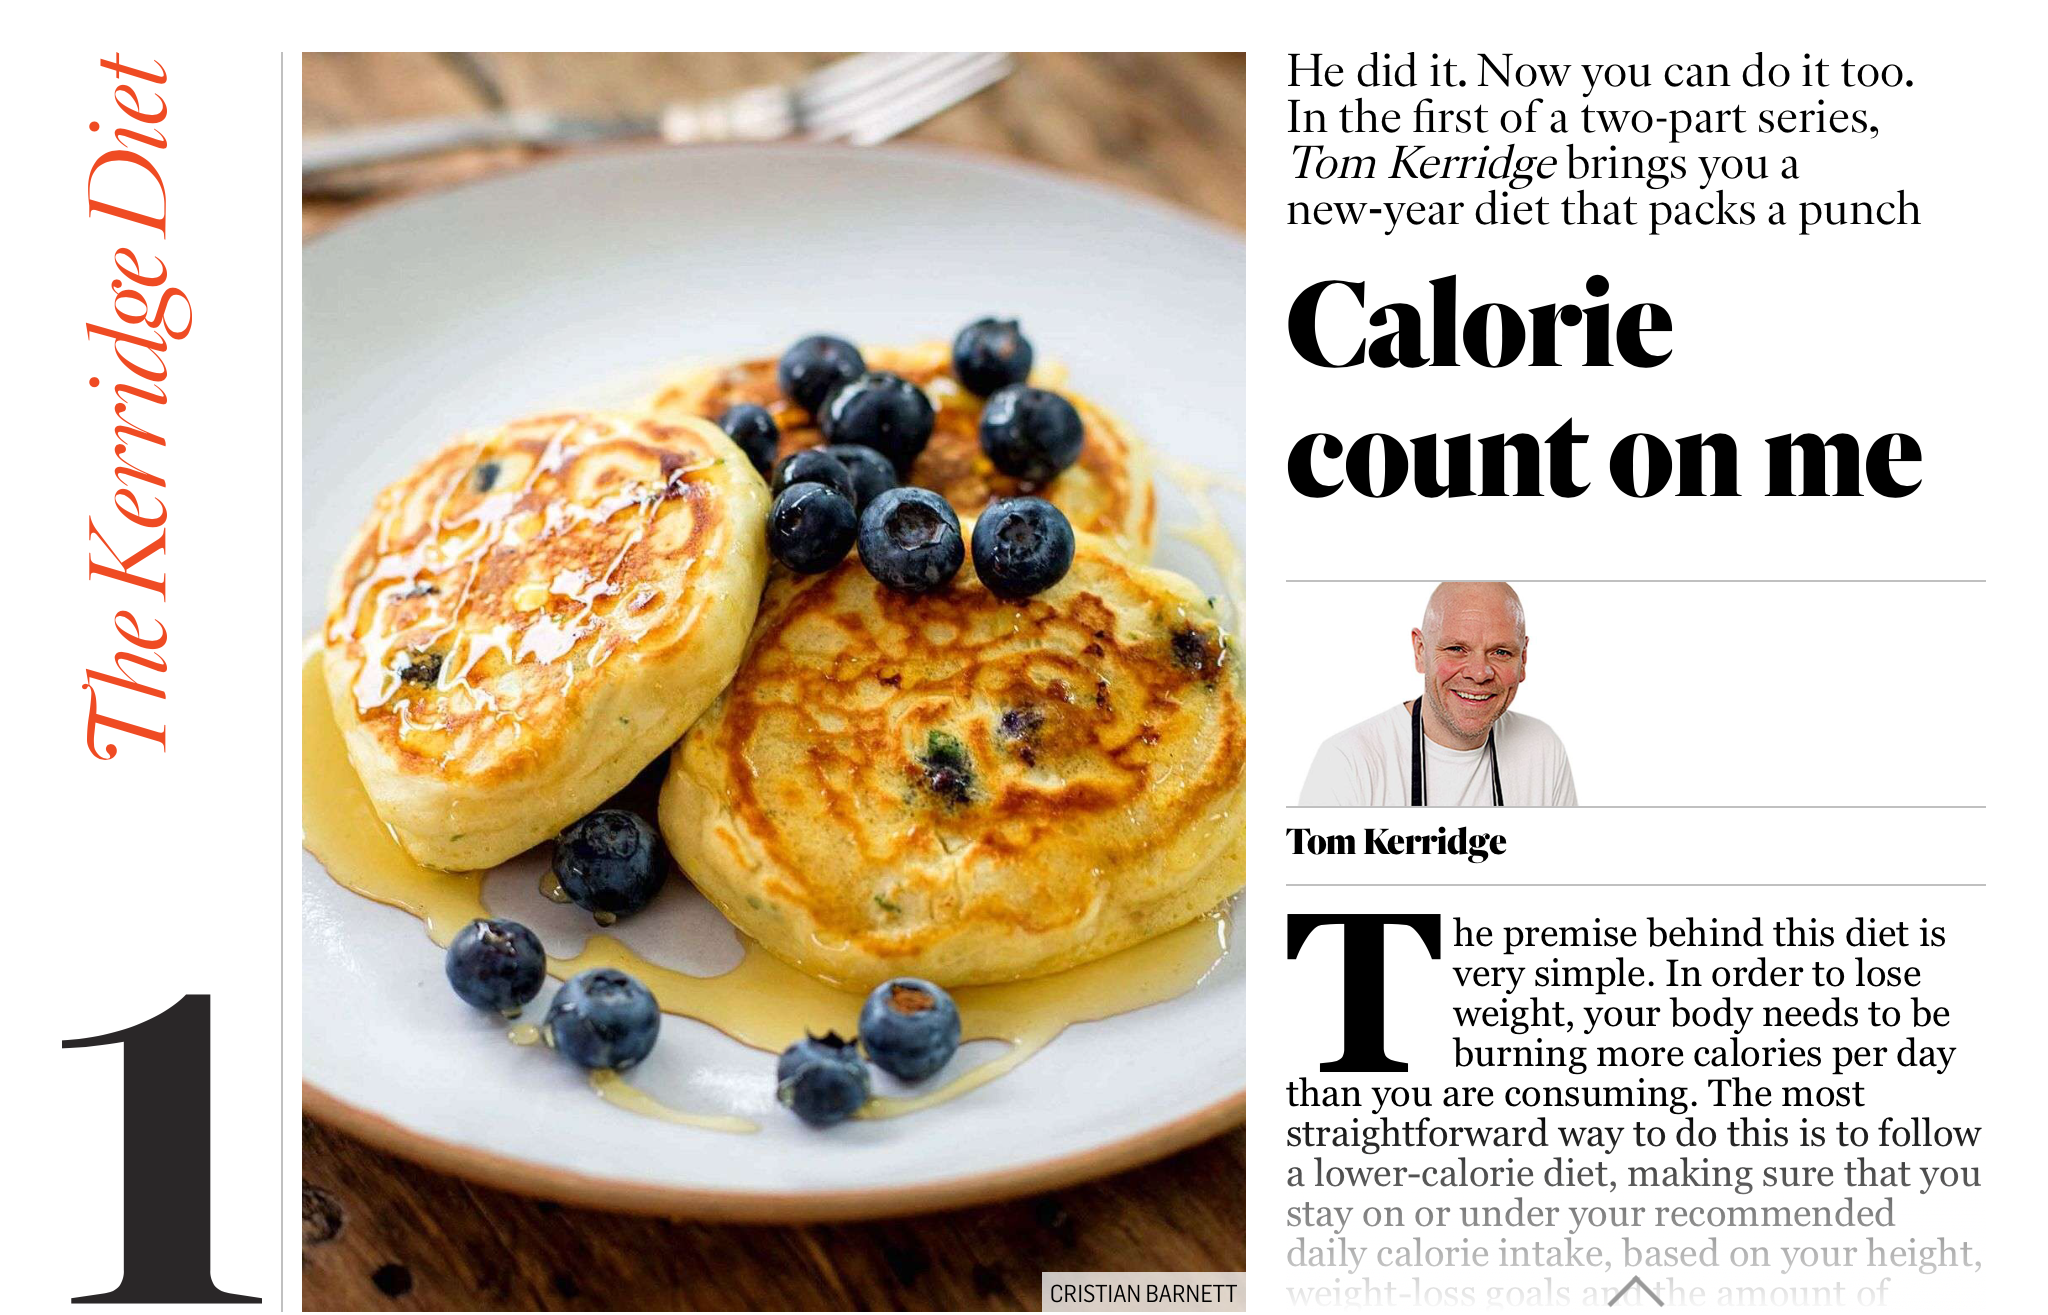 THE SUNDAY TIMES - Tom Kerridge uses SkandiHus wares in his latest cookbook - Dec 2017